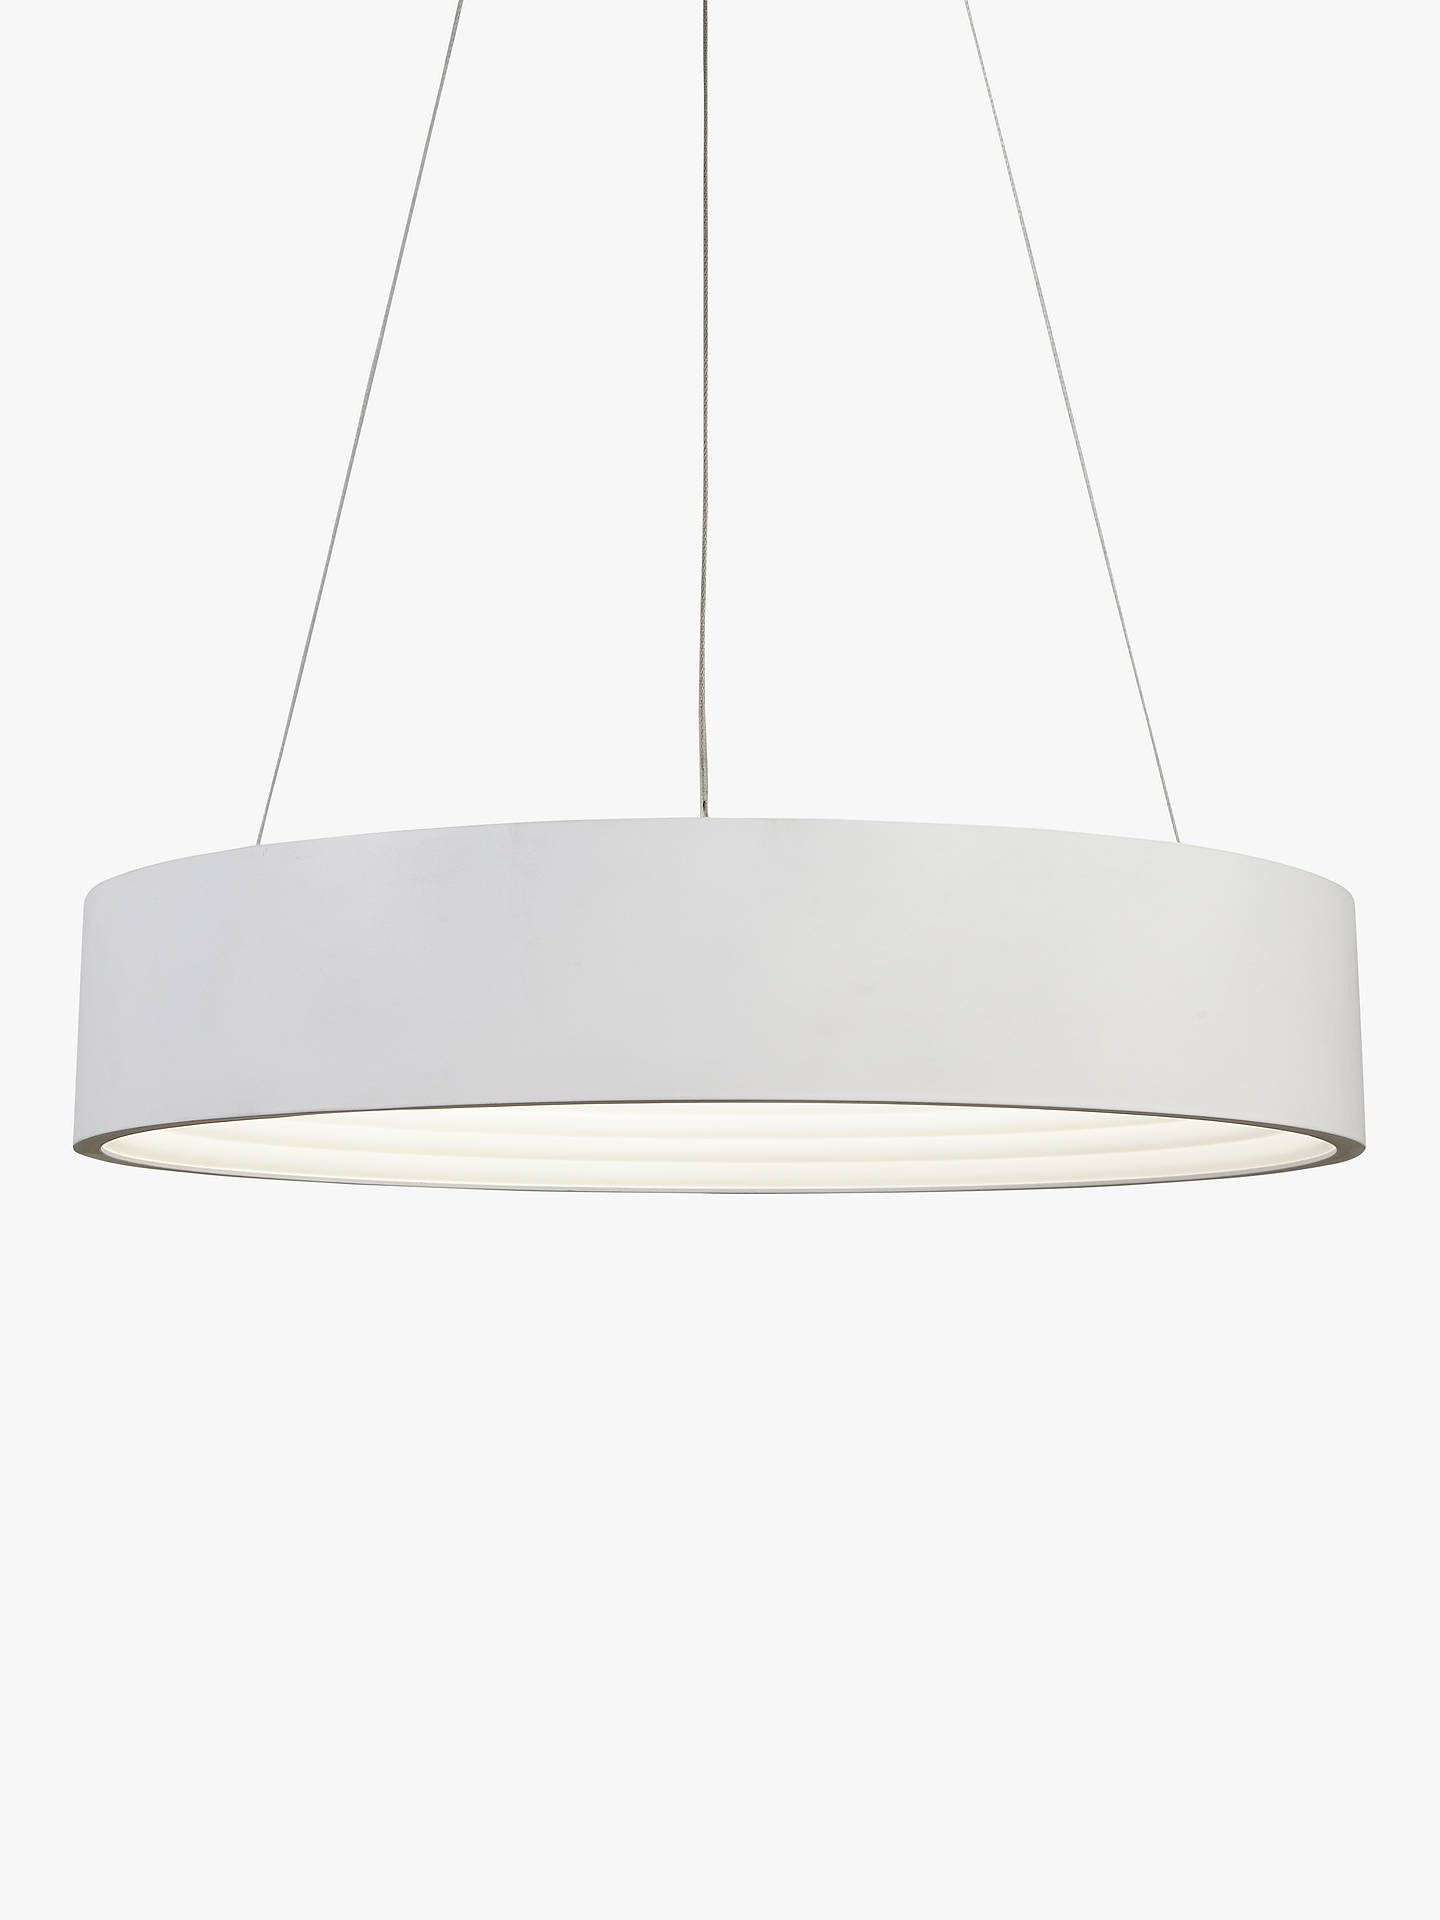 new arrival 0f9a7 5c30e John Lewis & Partners Leif Small LED Ribbed Hoop Ceiling Light, White